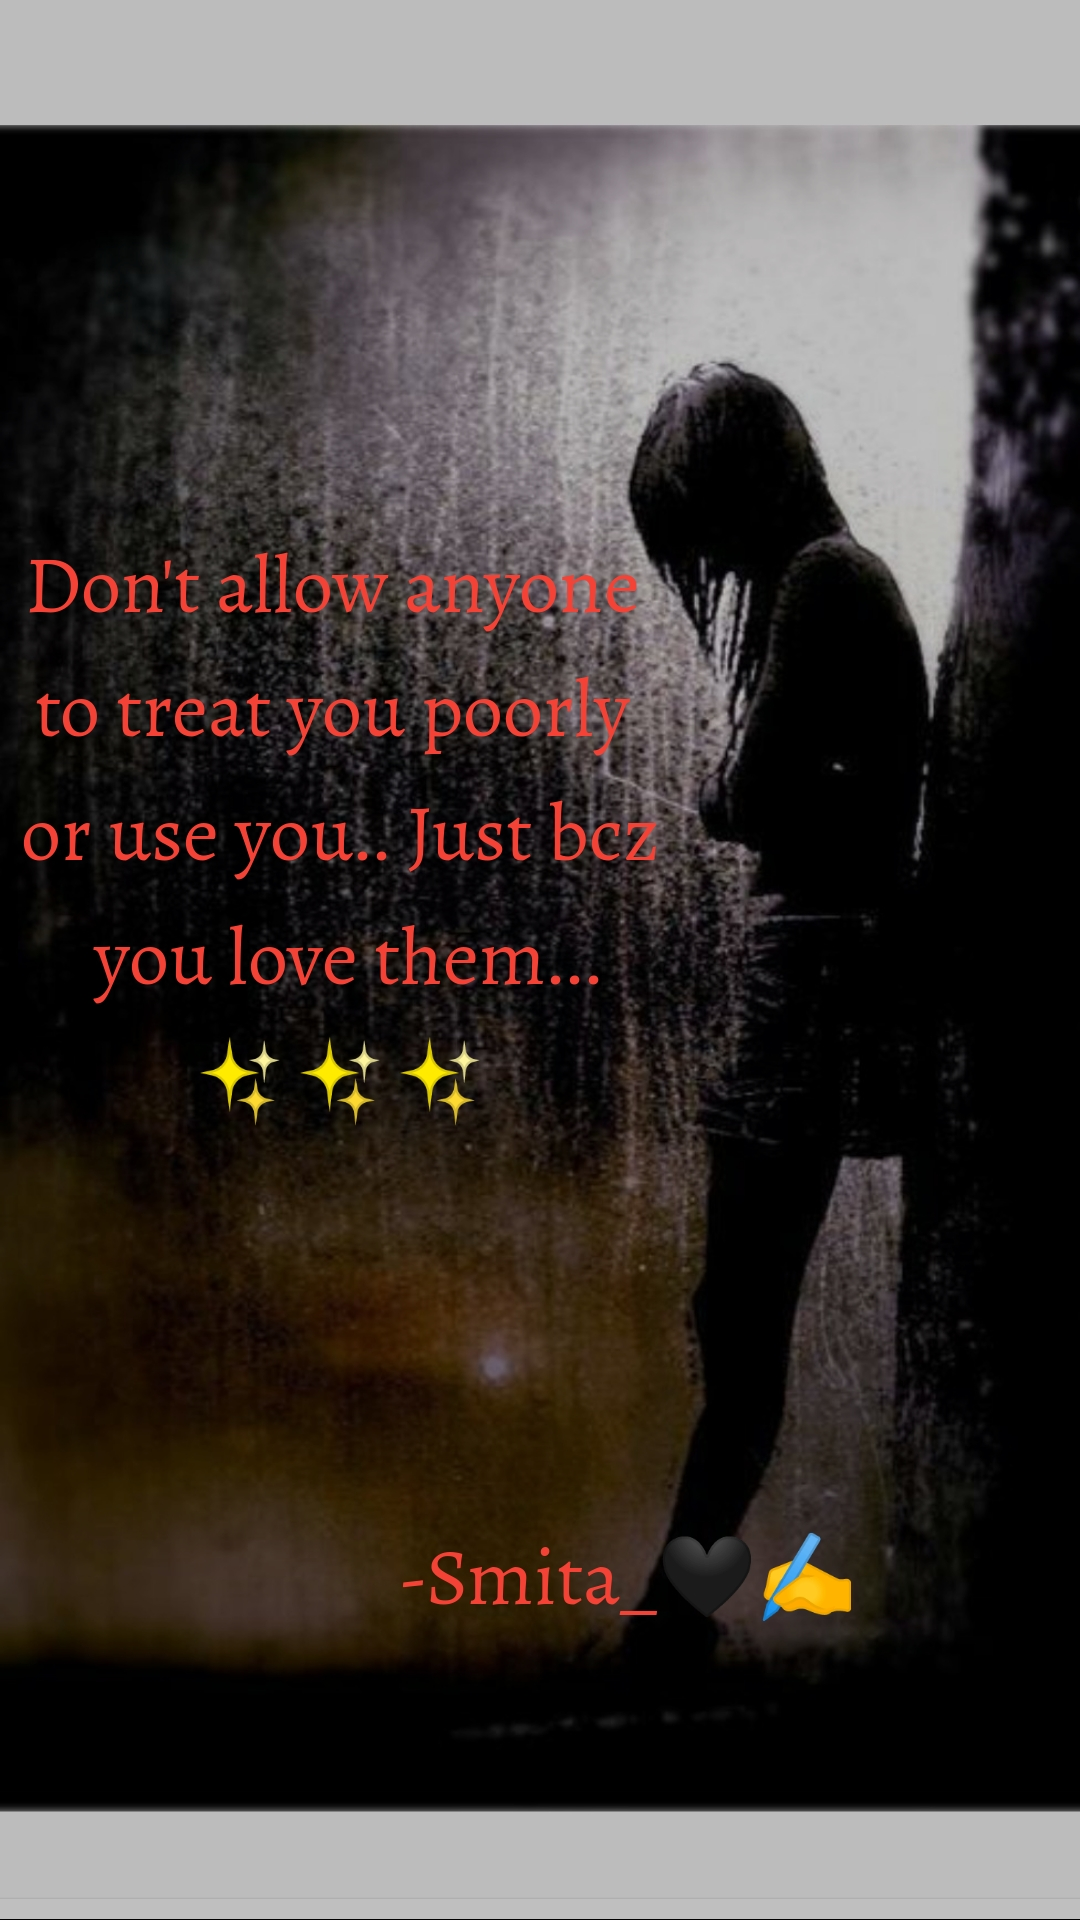 Don't allow anyone  to treat you poorly  or use you.. Just bcz  you love them... ✨✨✨                                        -Smita_🖤✍️